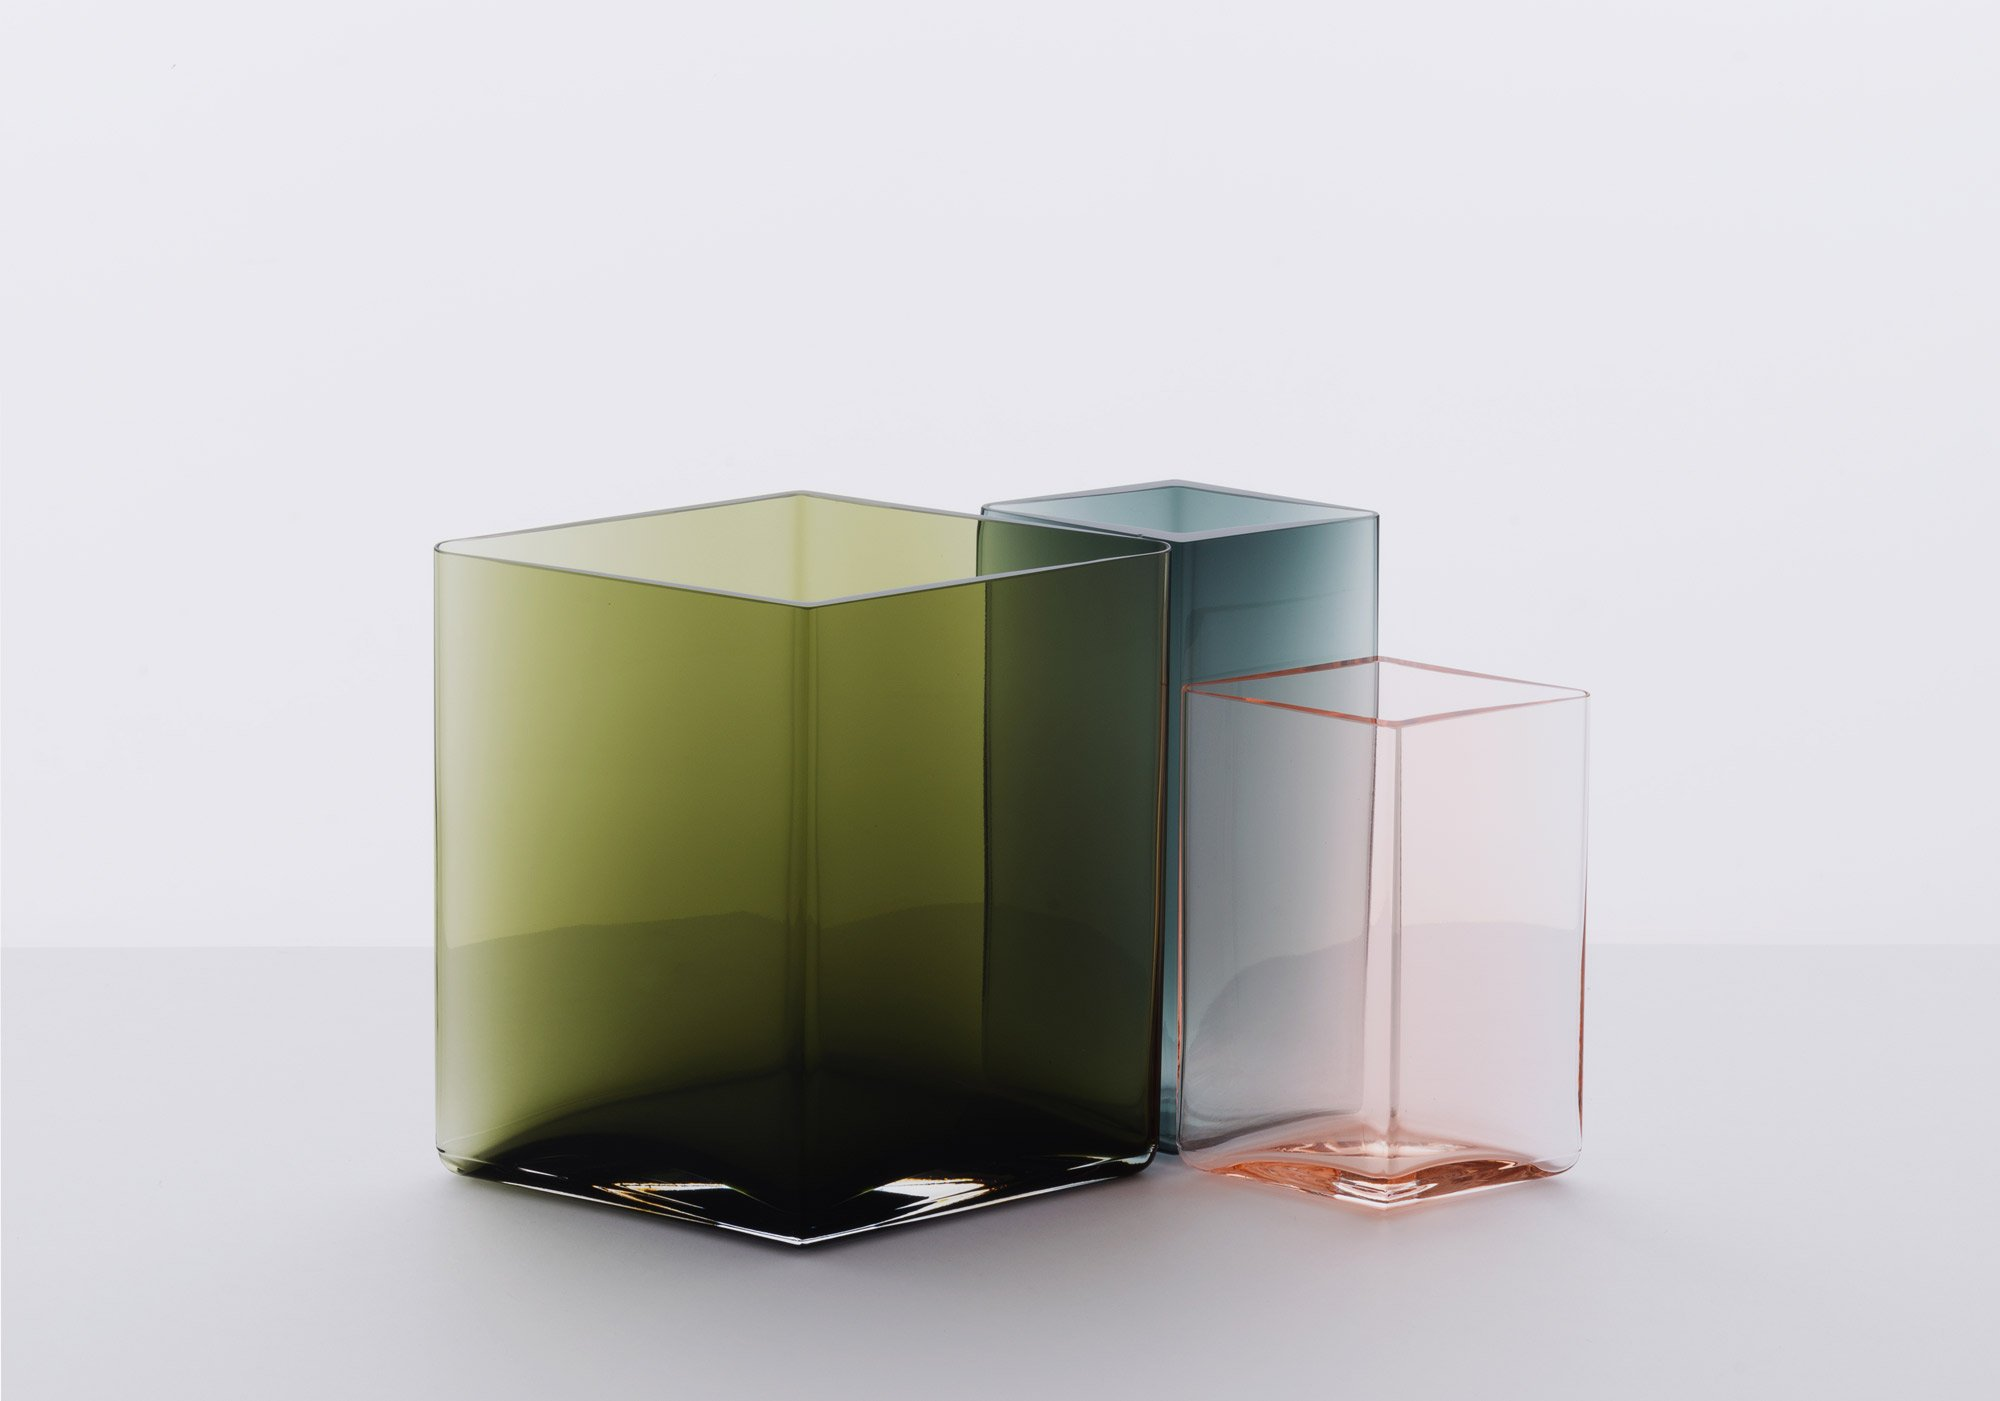 Exposition Bouroullec Rennes